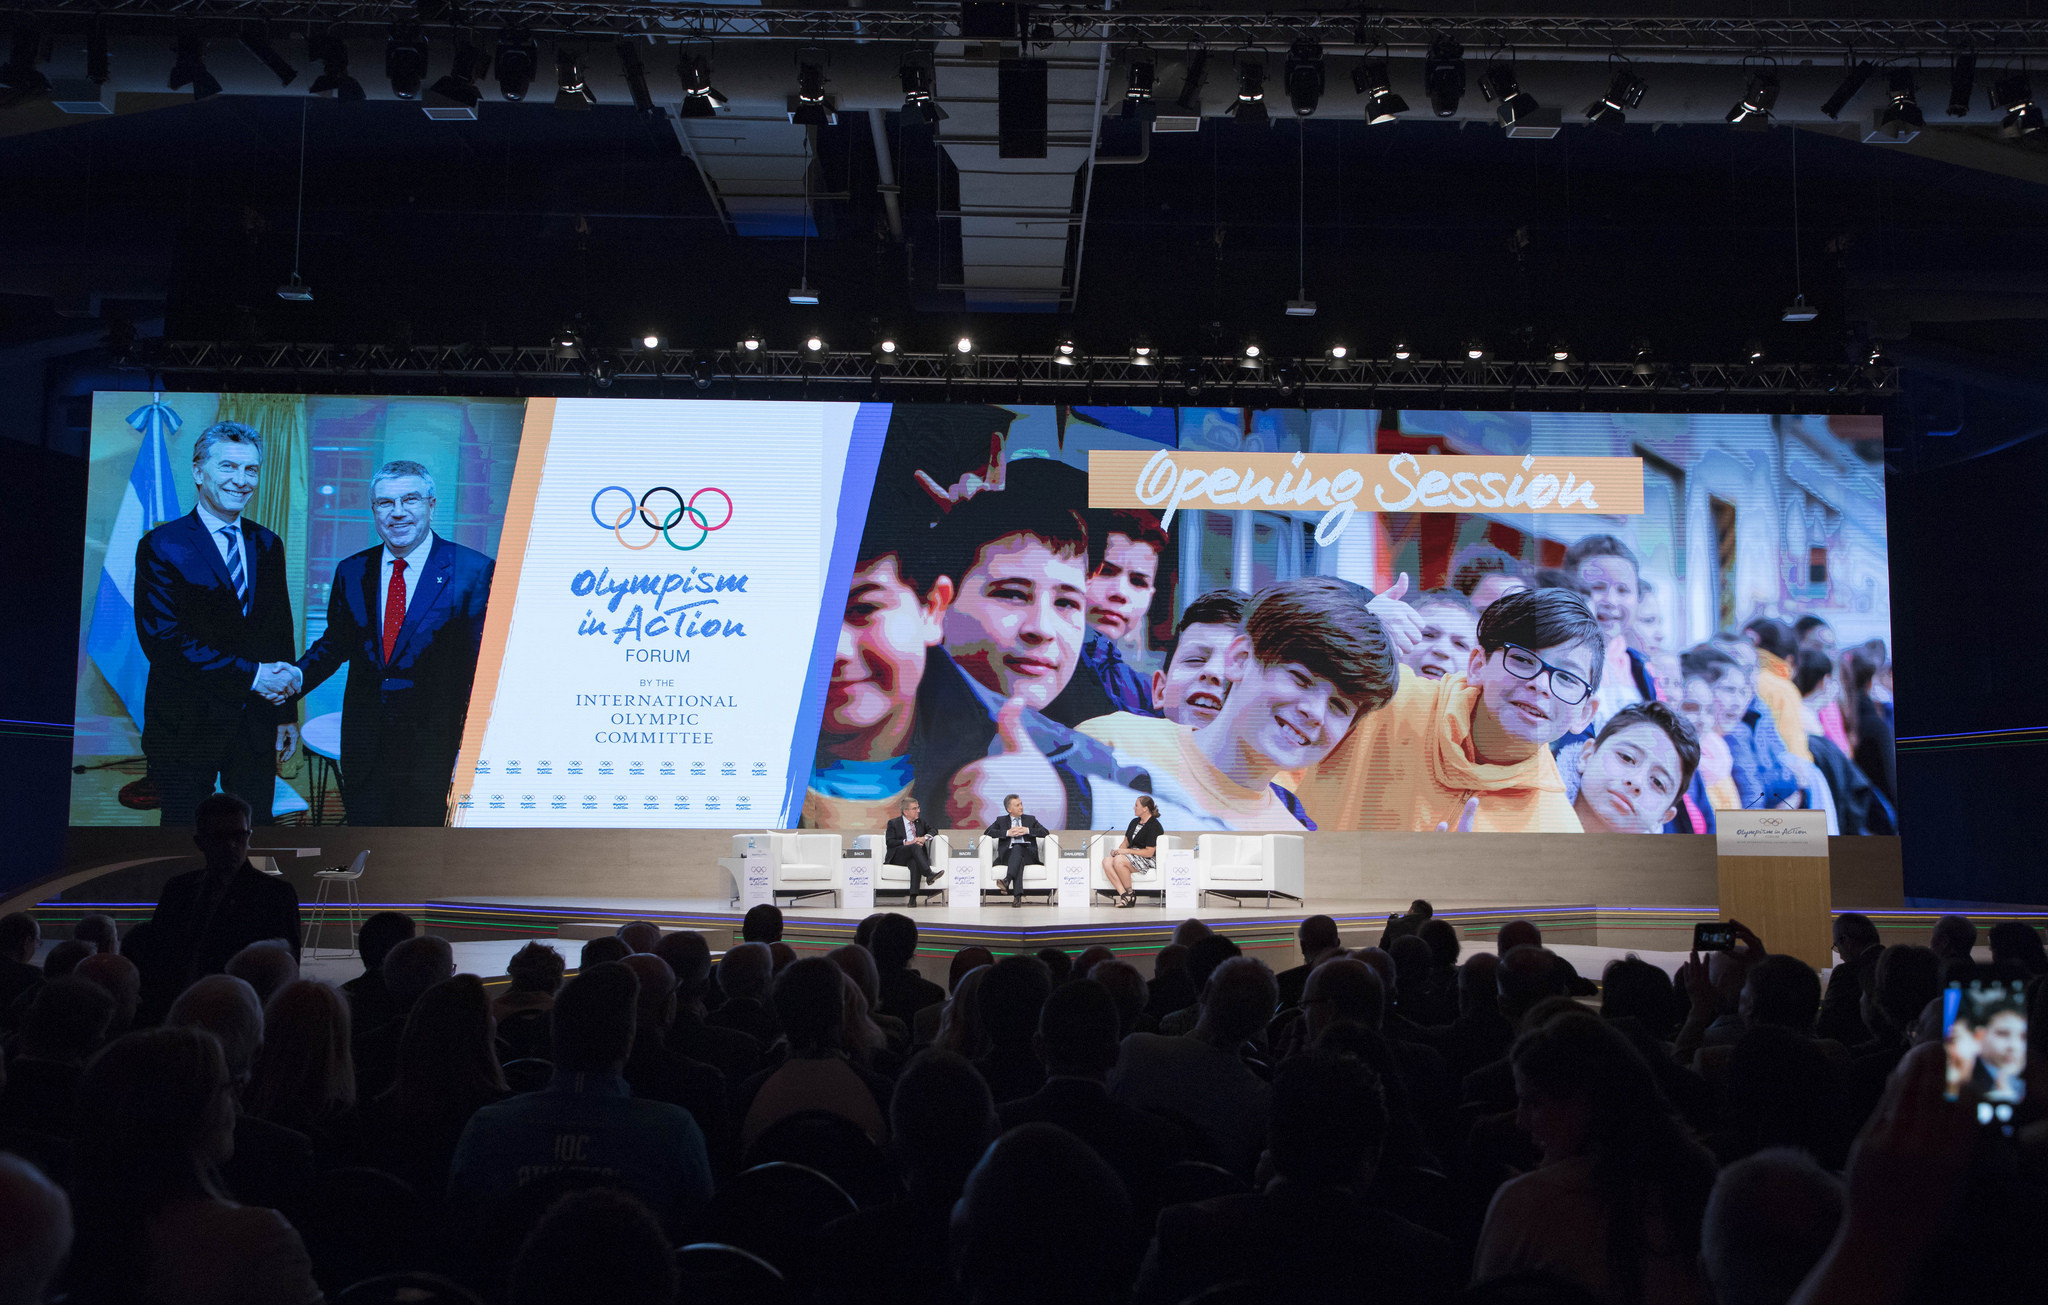 Doping debate and host city discussions dominate opening day of Olympism in Action forum